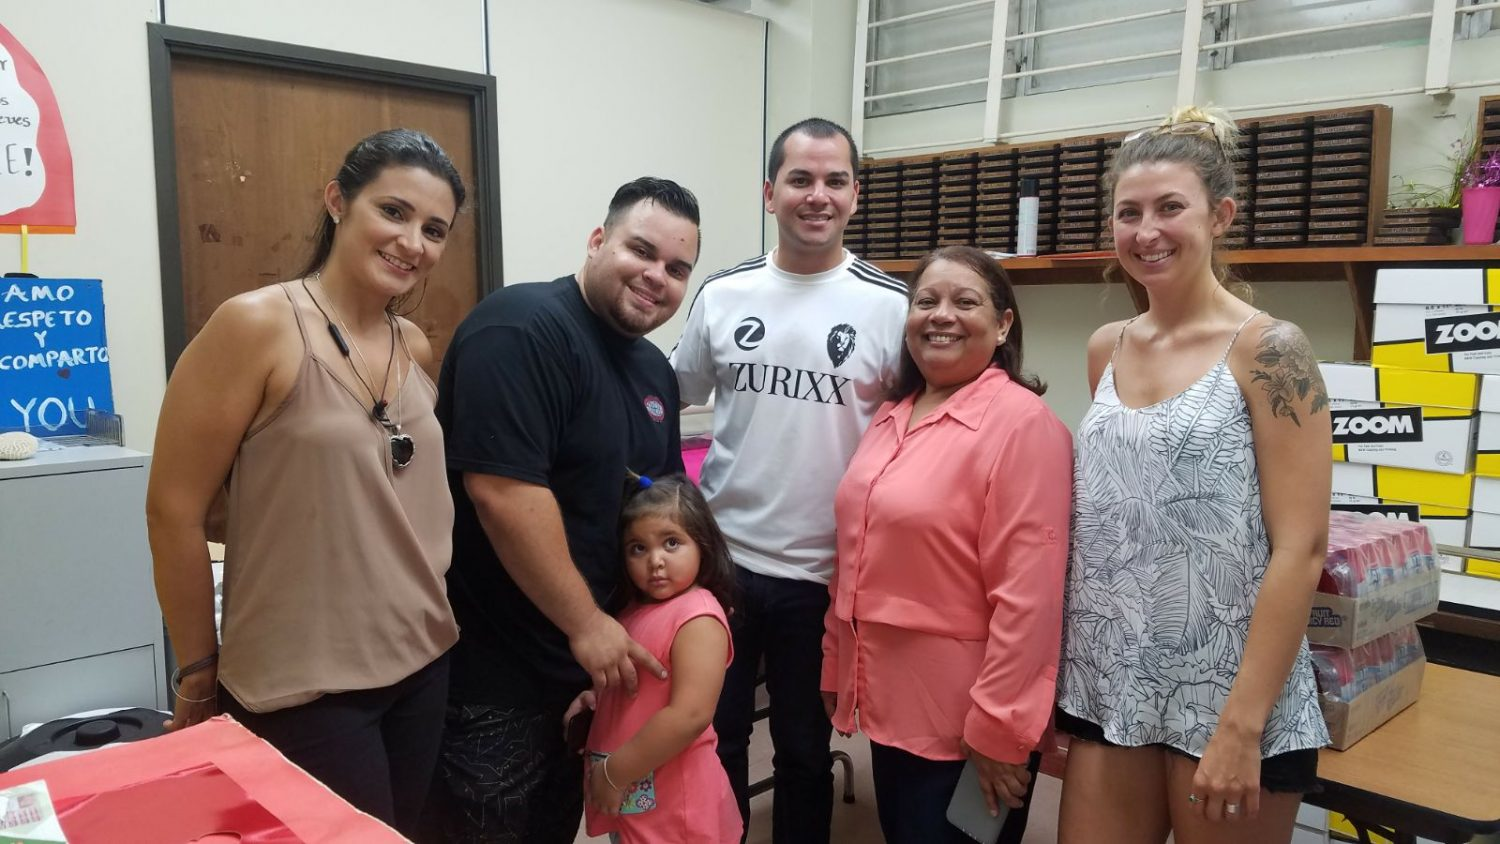 Zurixx Puerto Rico held a school supply fundraiser to collect school supplies to benefit the local elementary school in the area.